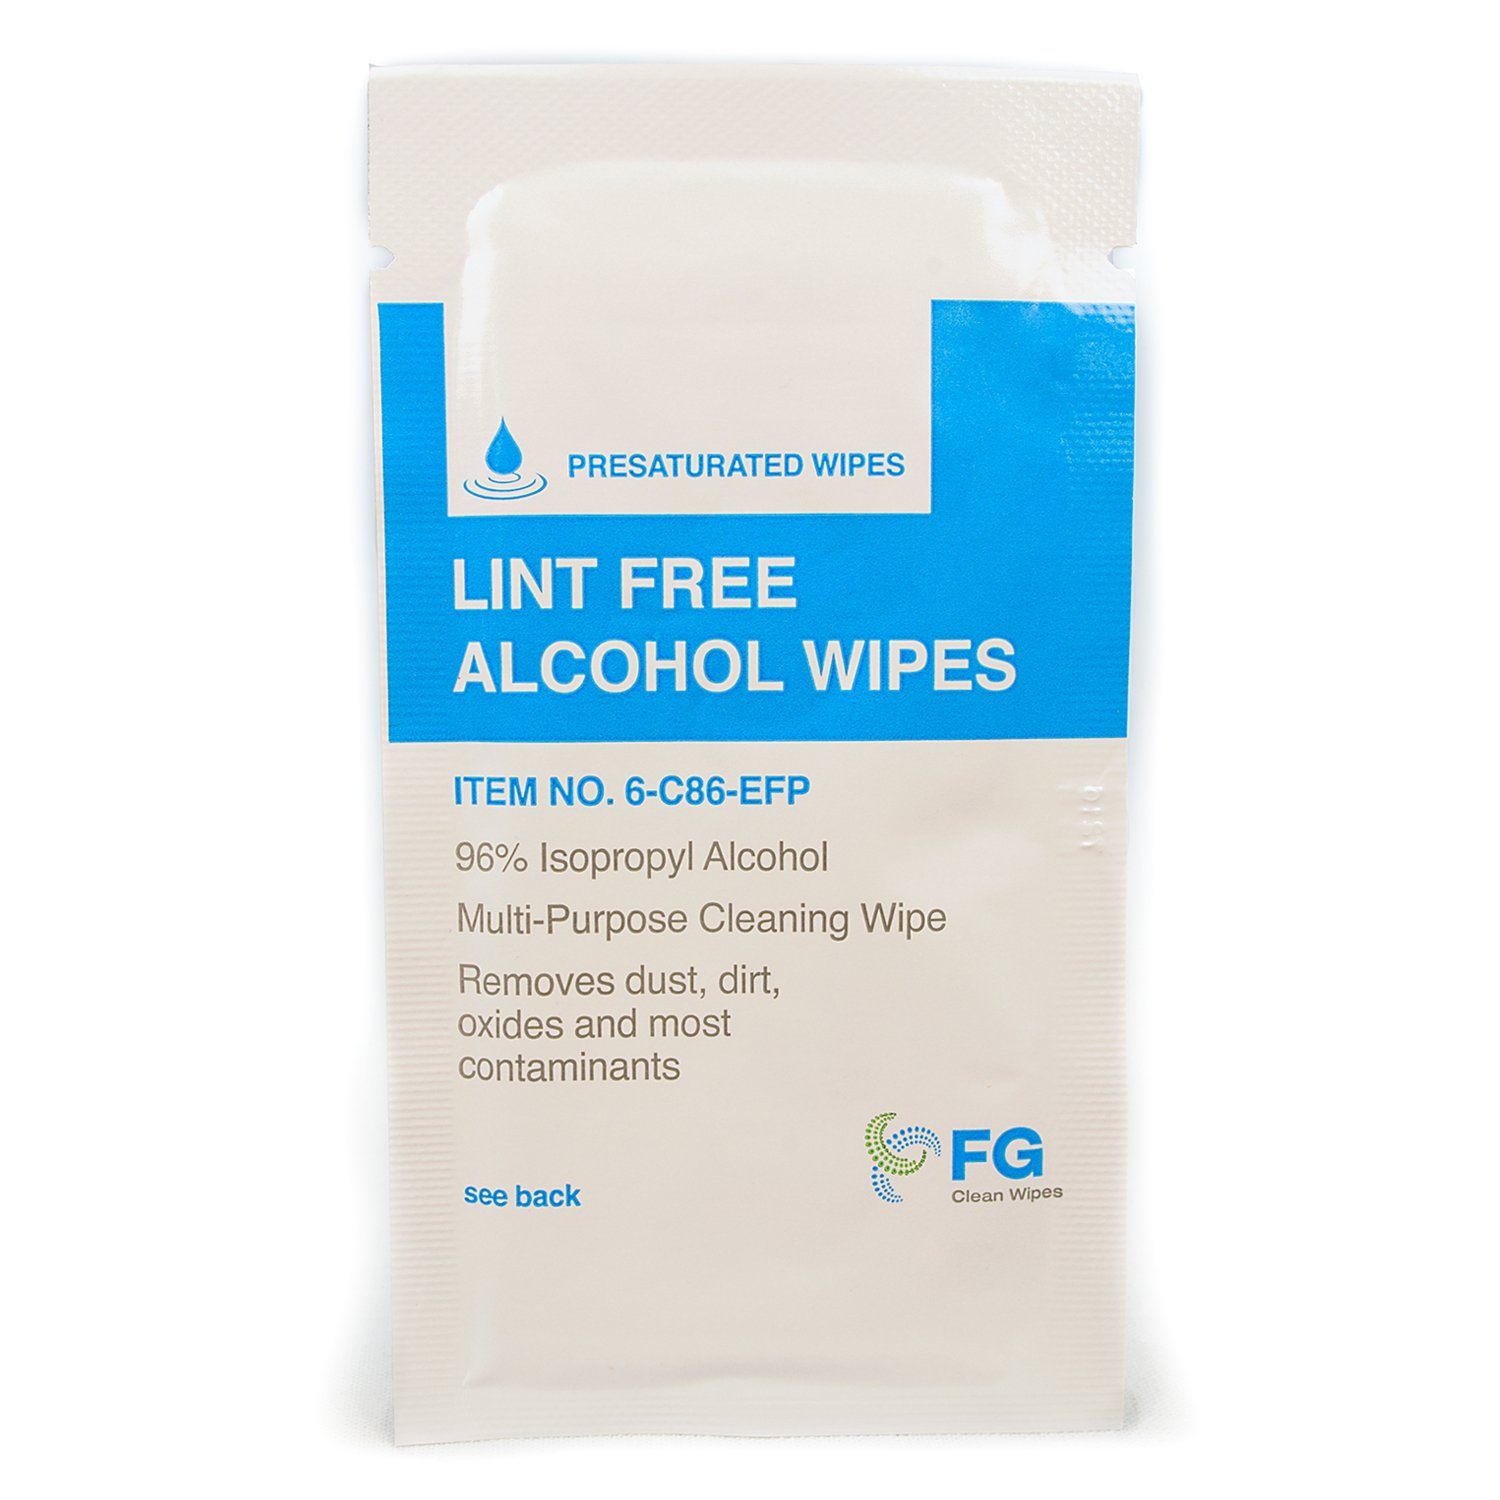 FG Clean Wipes 6-C86 Lint Free Presaturated Wipes (Box of 30)